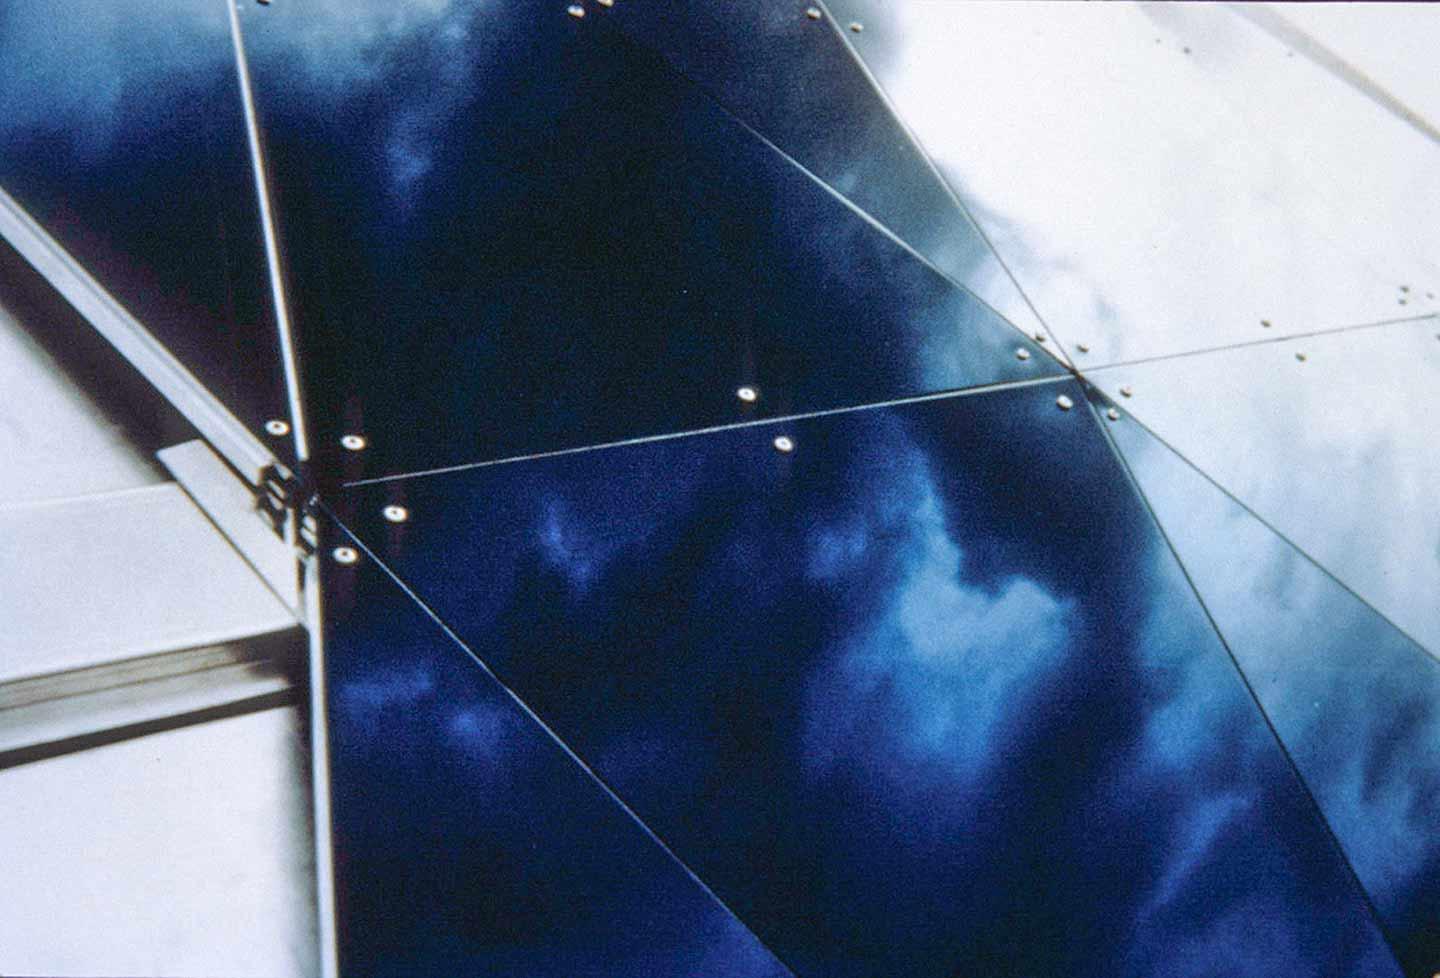 Detail of the MOSI dual curvature roof panel system during installation.